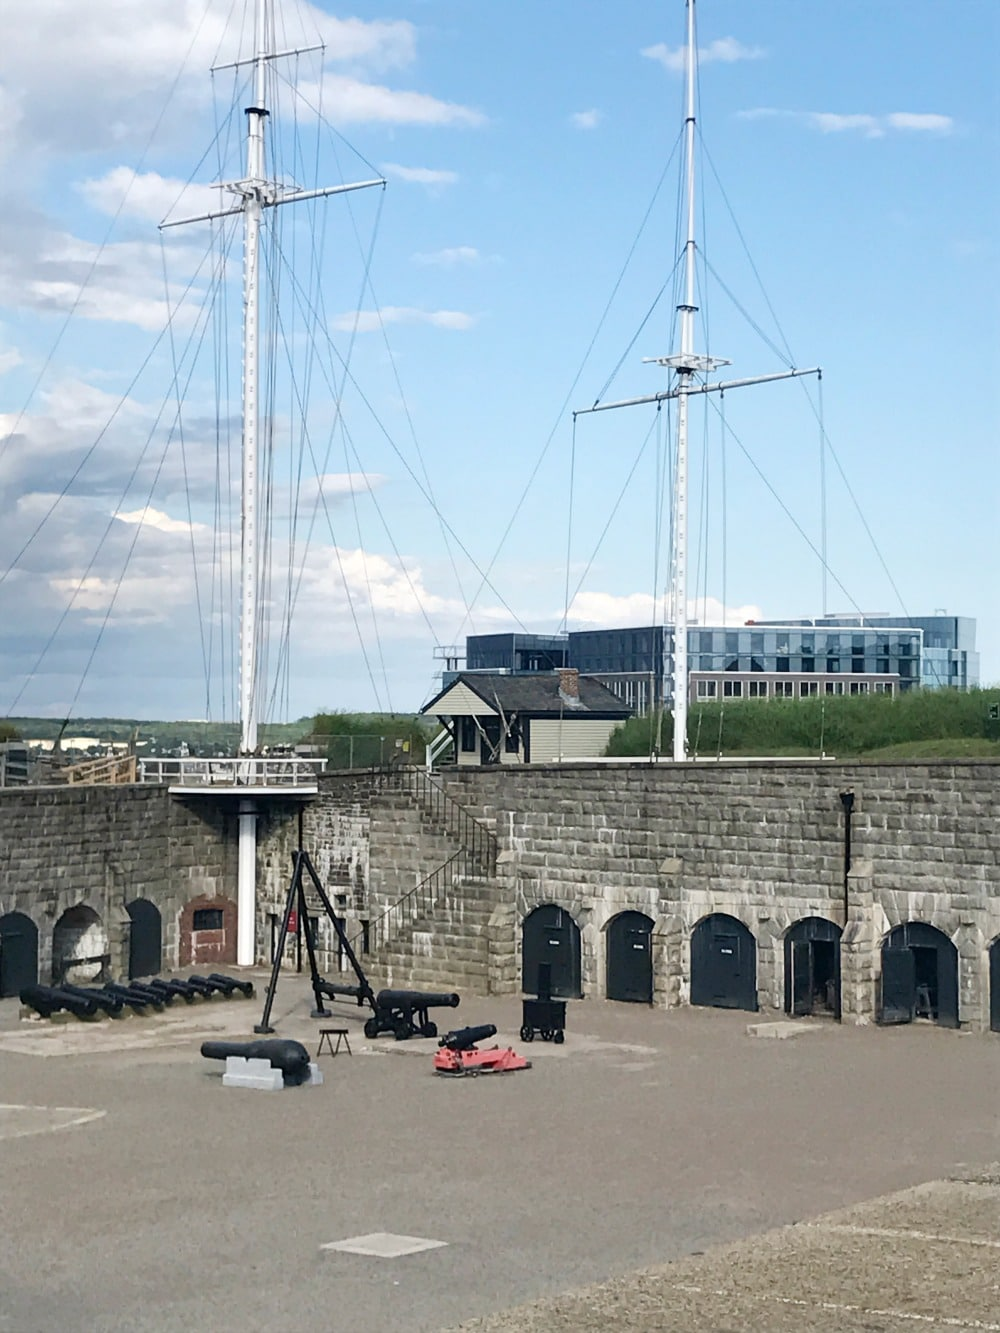 Things To Do in Halifax - Citadel